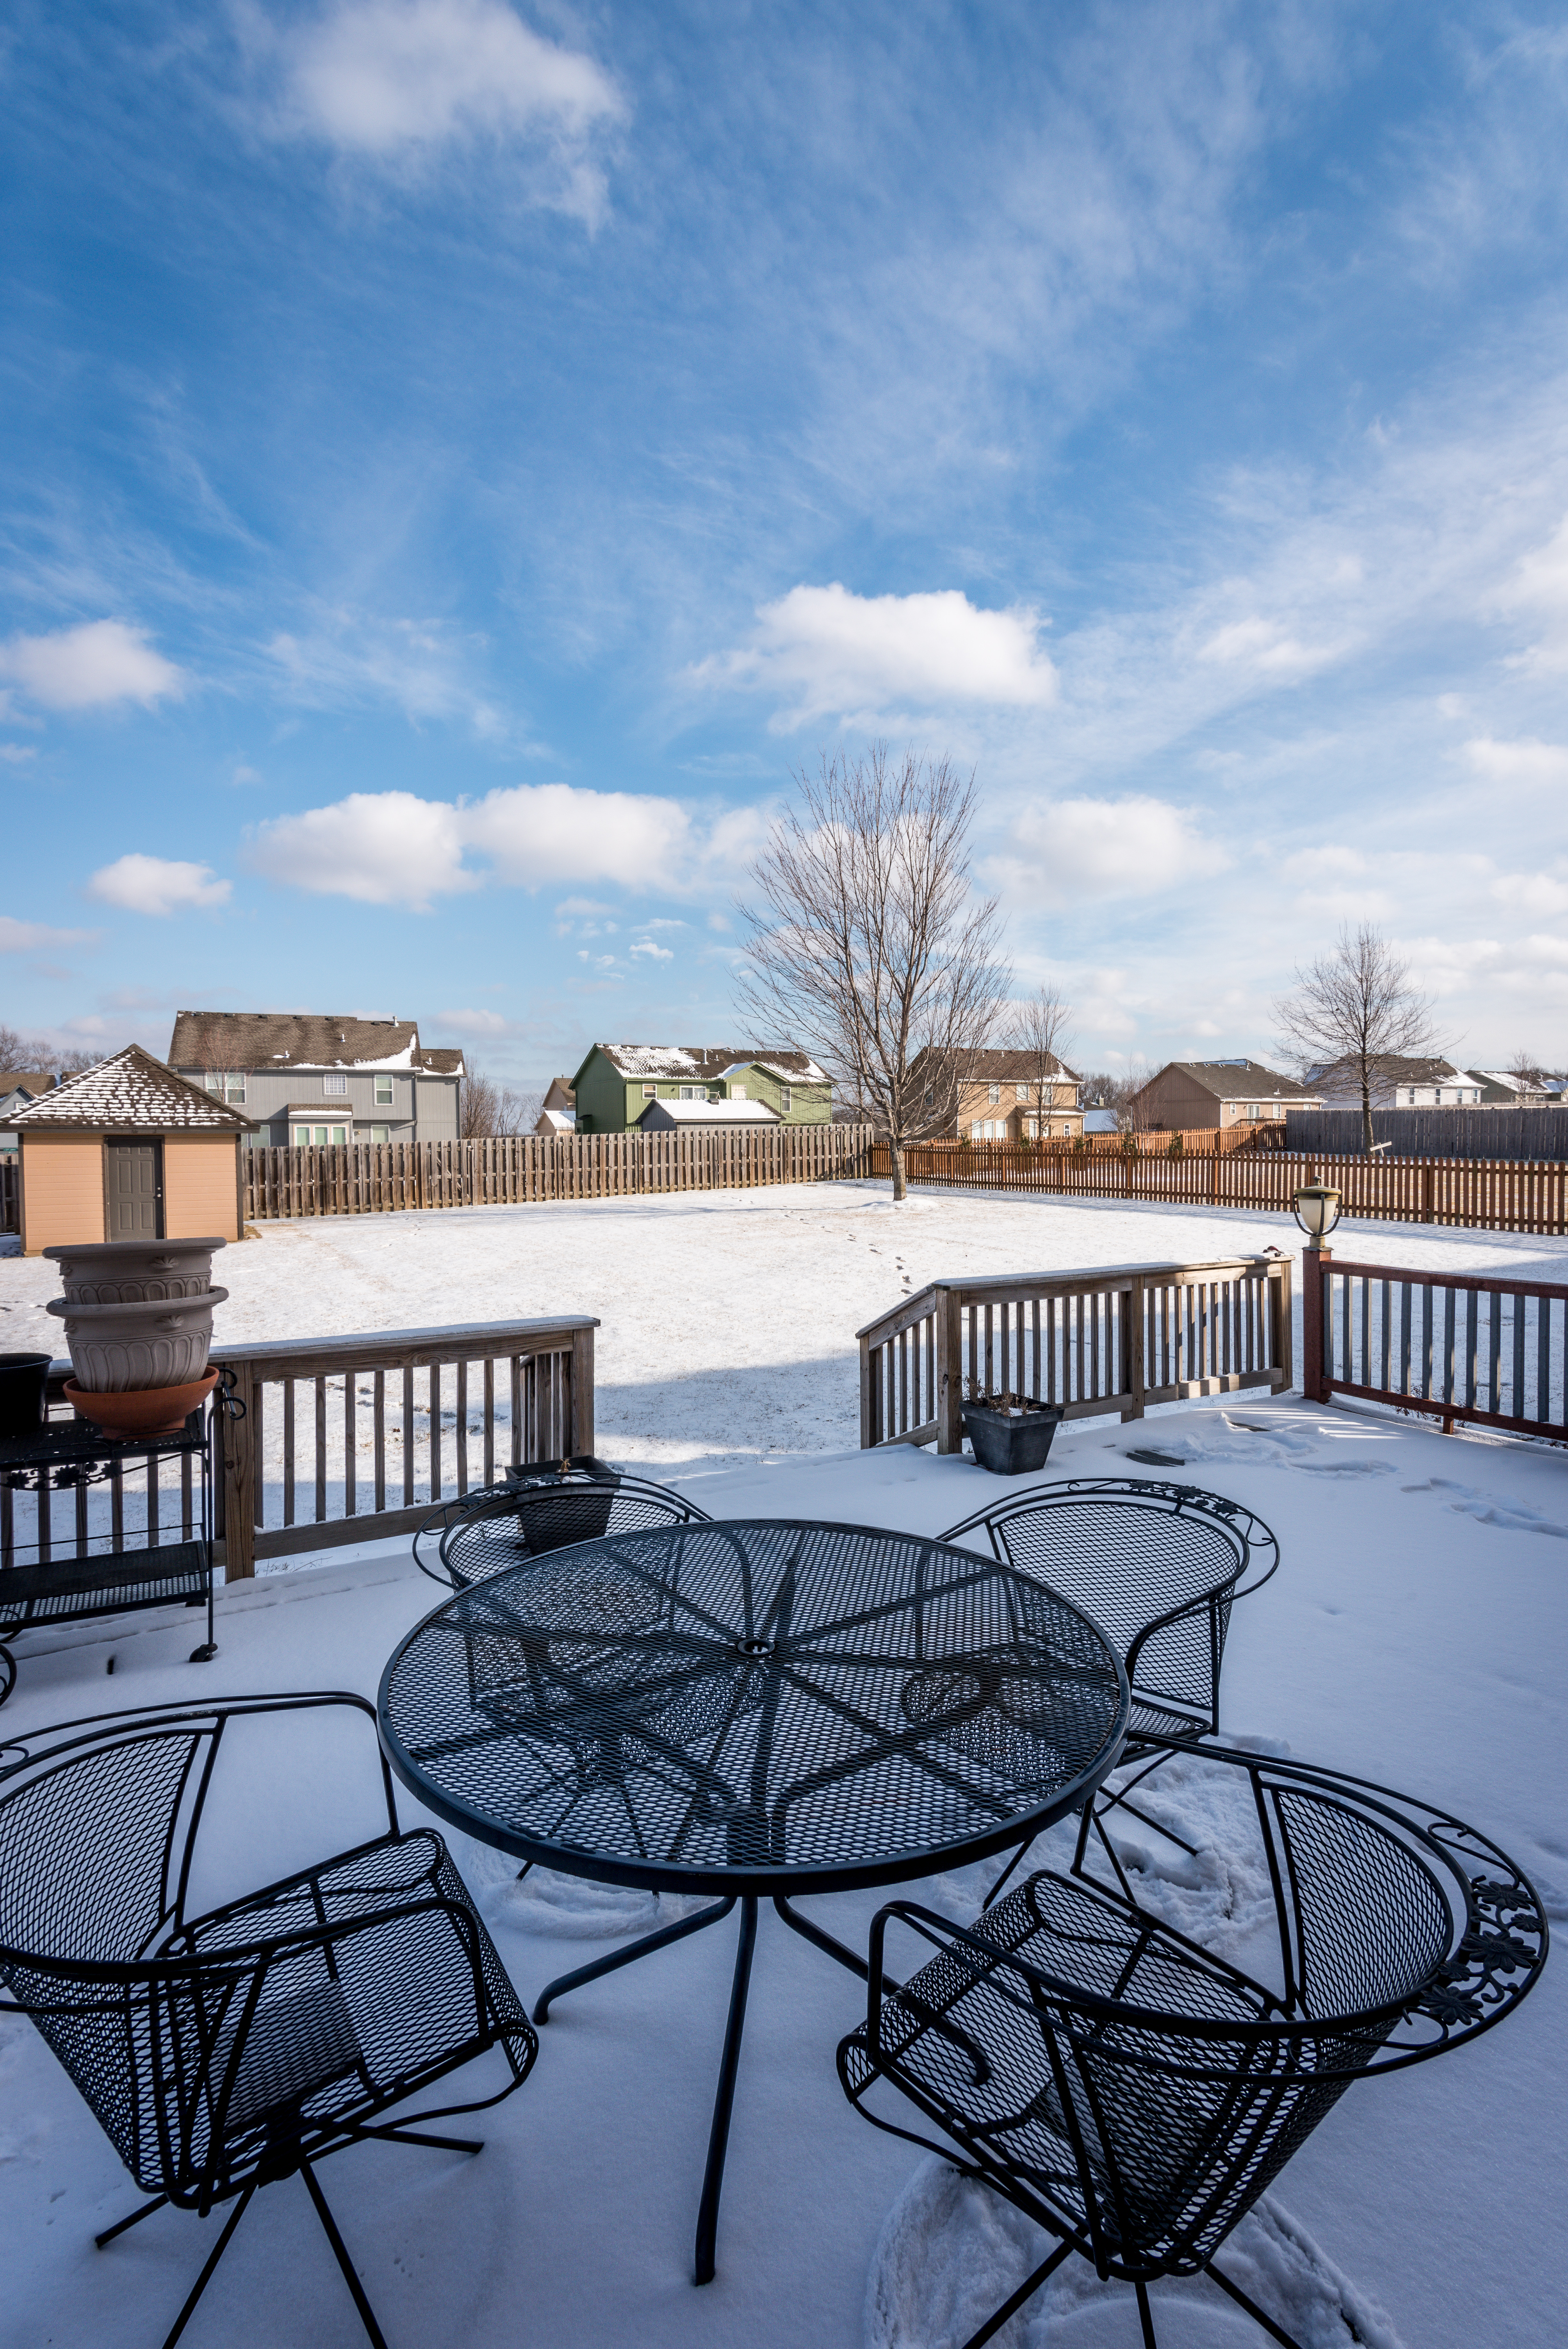 4421 N 122nd St, KCK - exterior-8